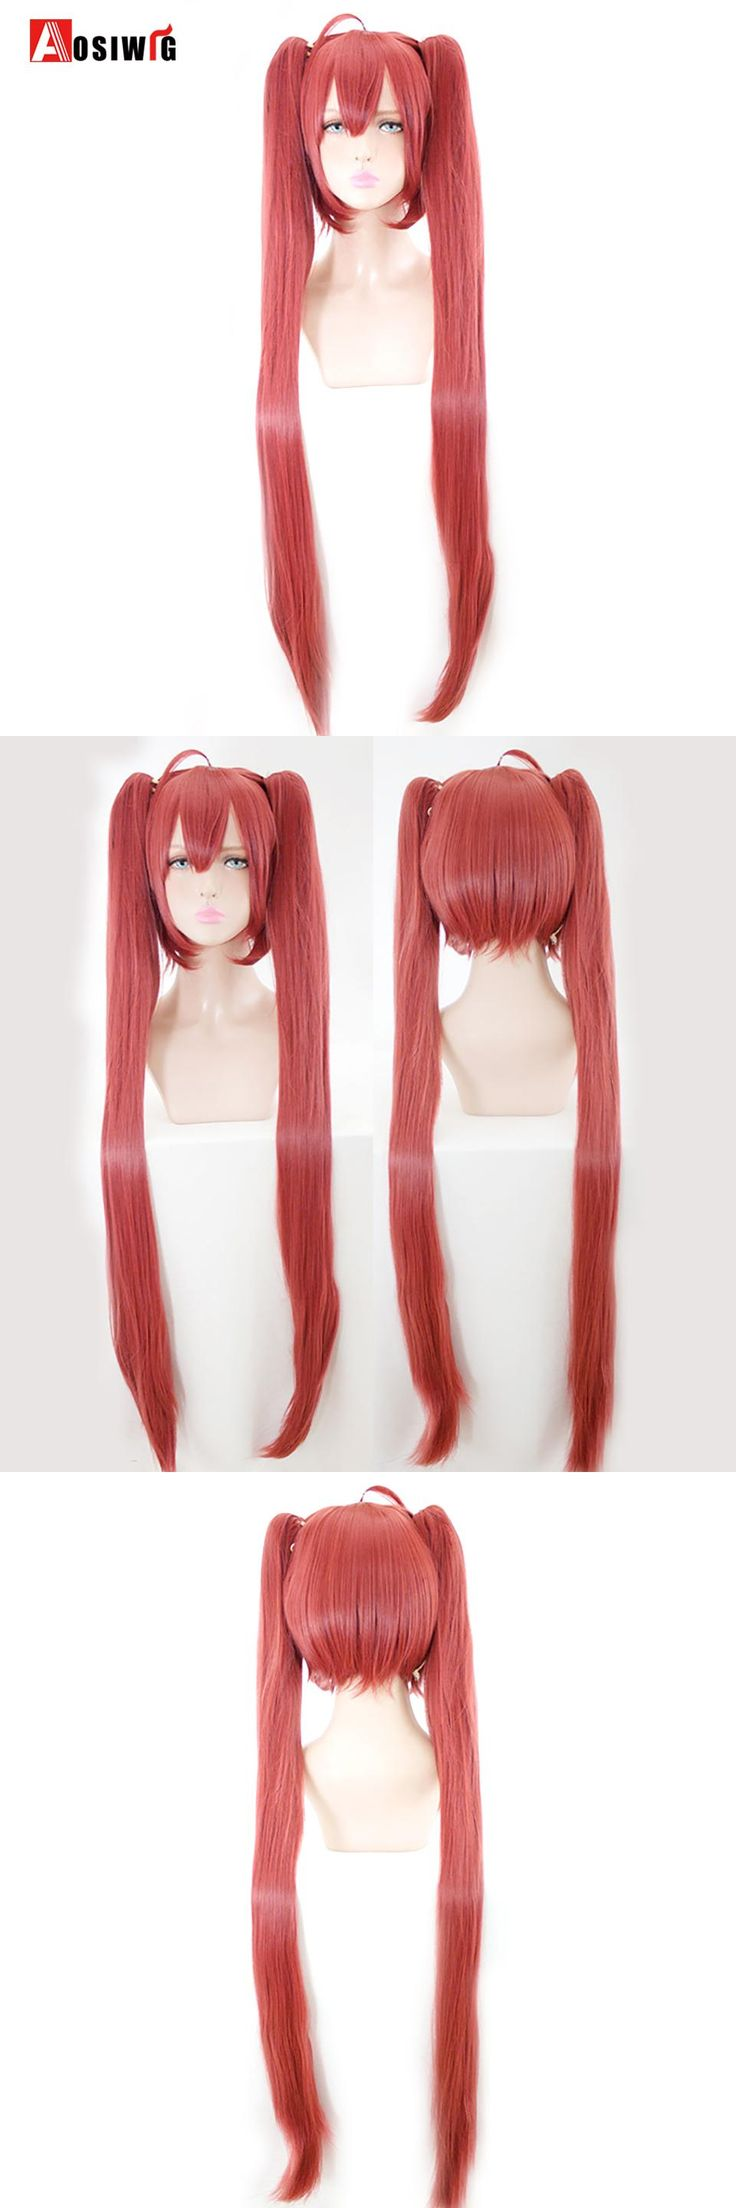 AOSIWIG Long Straight Hair Double Ponytail Wig Synthetic Hair Halloween Costumes Party High Temperature Fiber Cosplay Wigs